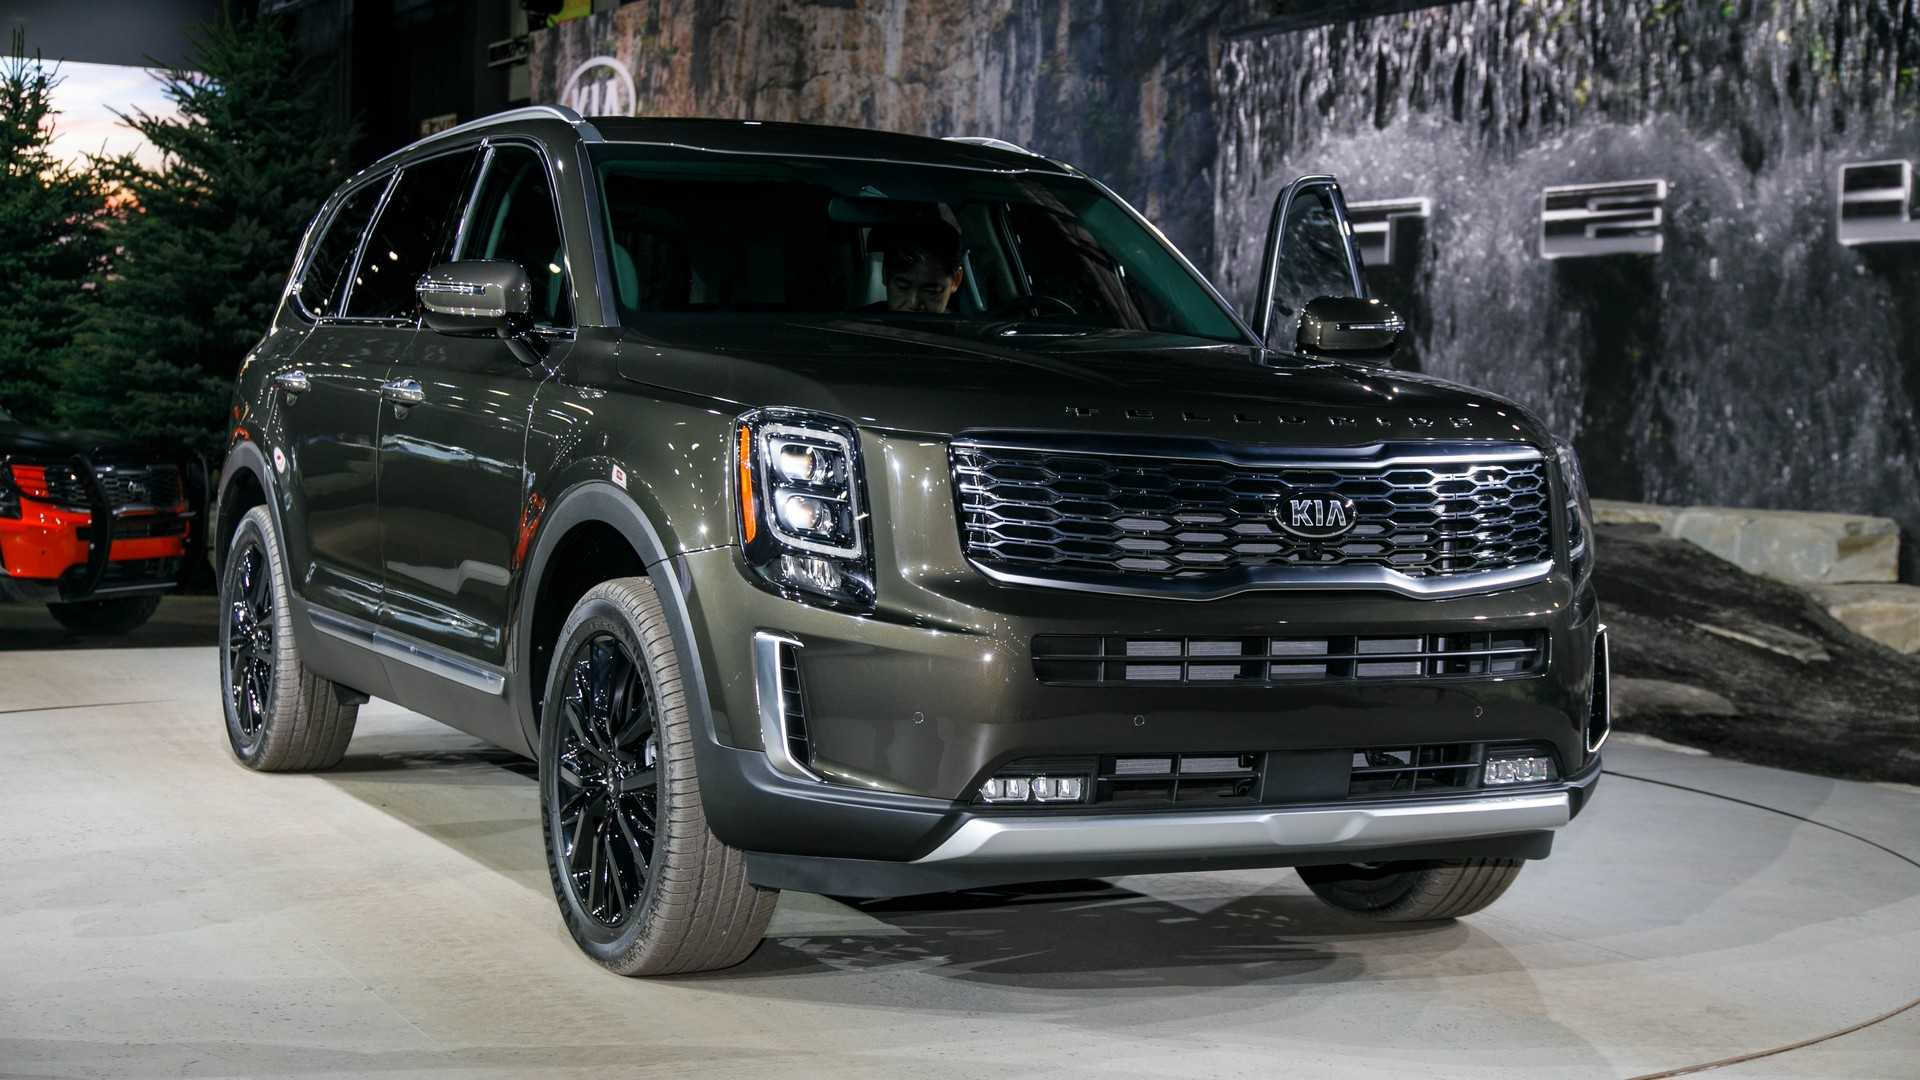 kia telluride 2020 review and specs | peeker automotive